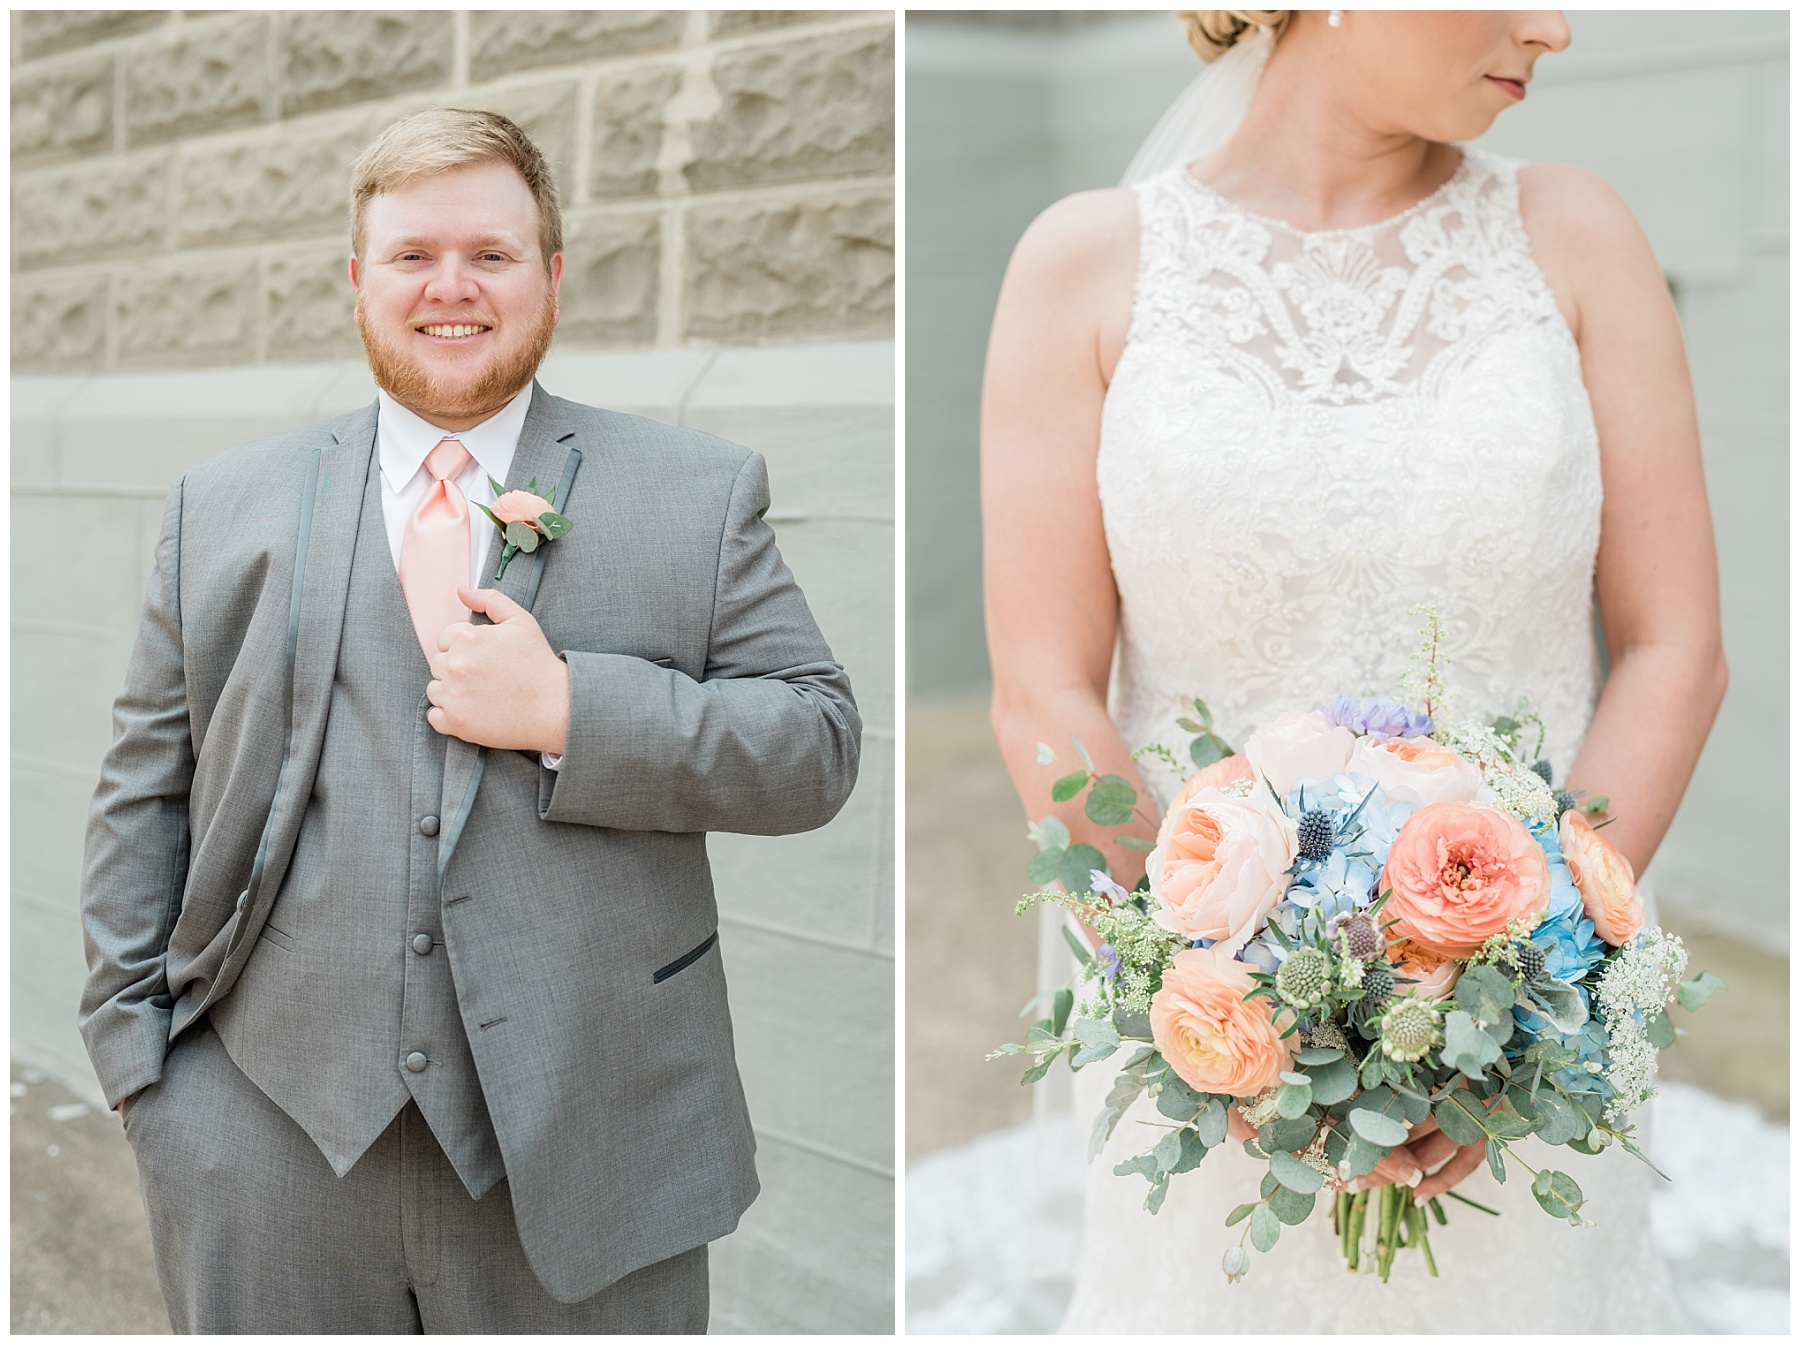 Peach and Dusty Blue Spring Wedding in Rolling Hills of Mid Missouri by Kelsi Kliethermes Photography Best Missouri and Maui Wedding Photographer_0033.jpg